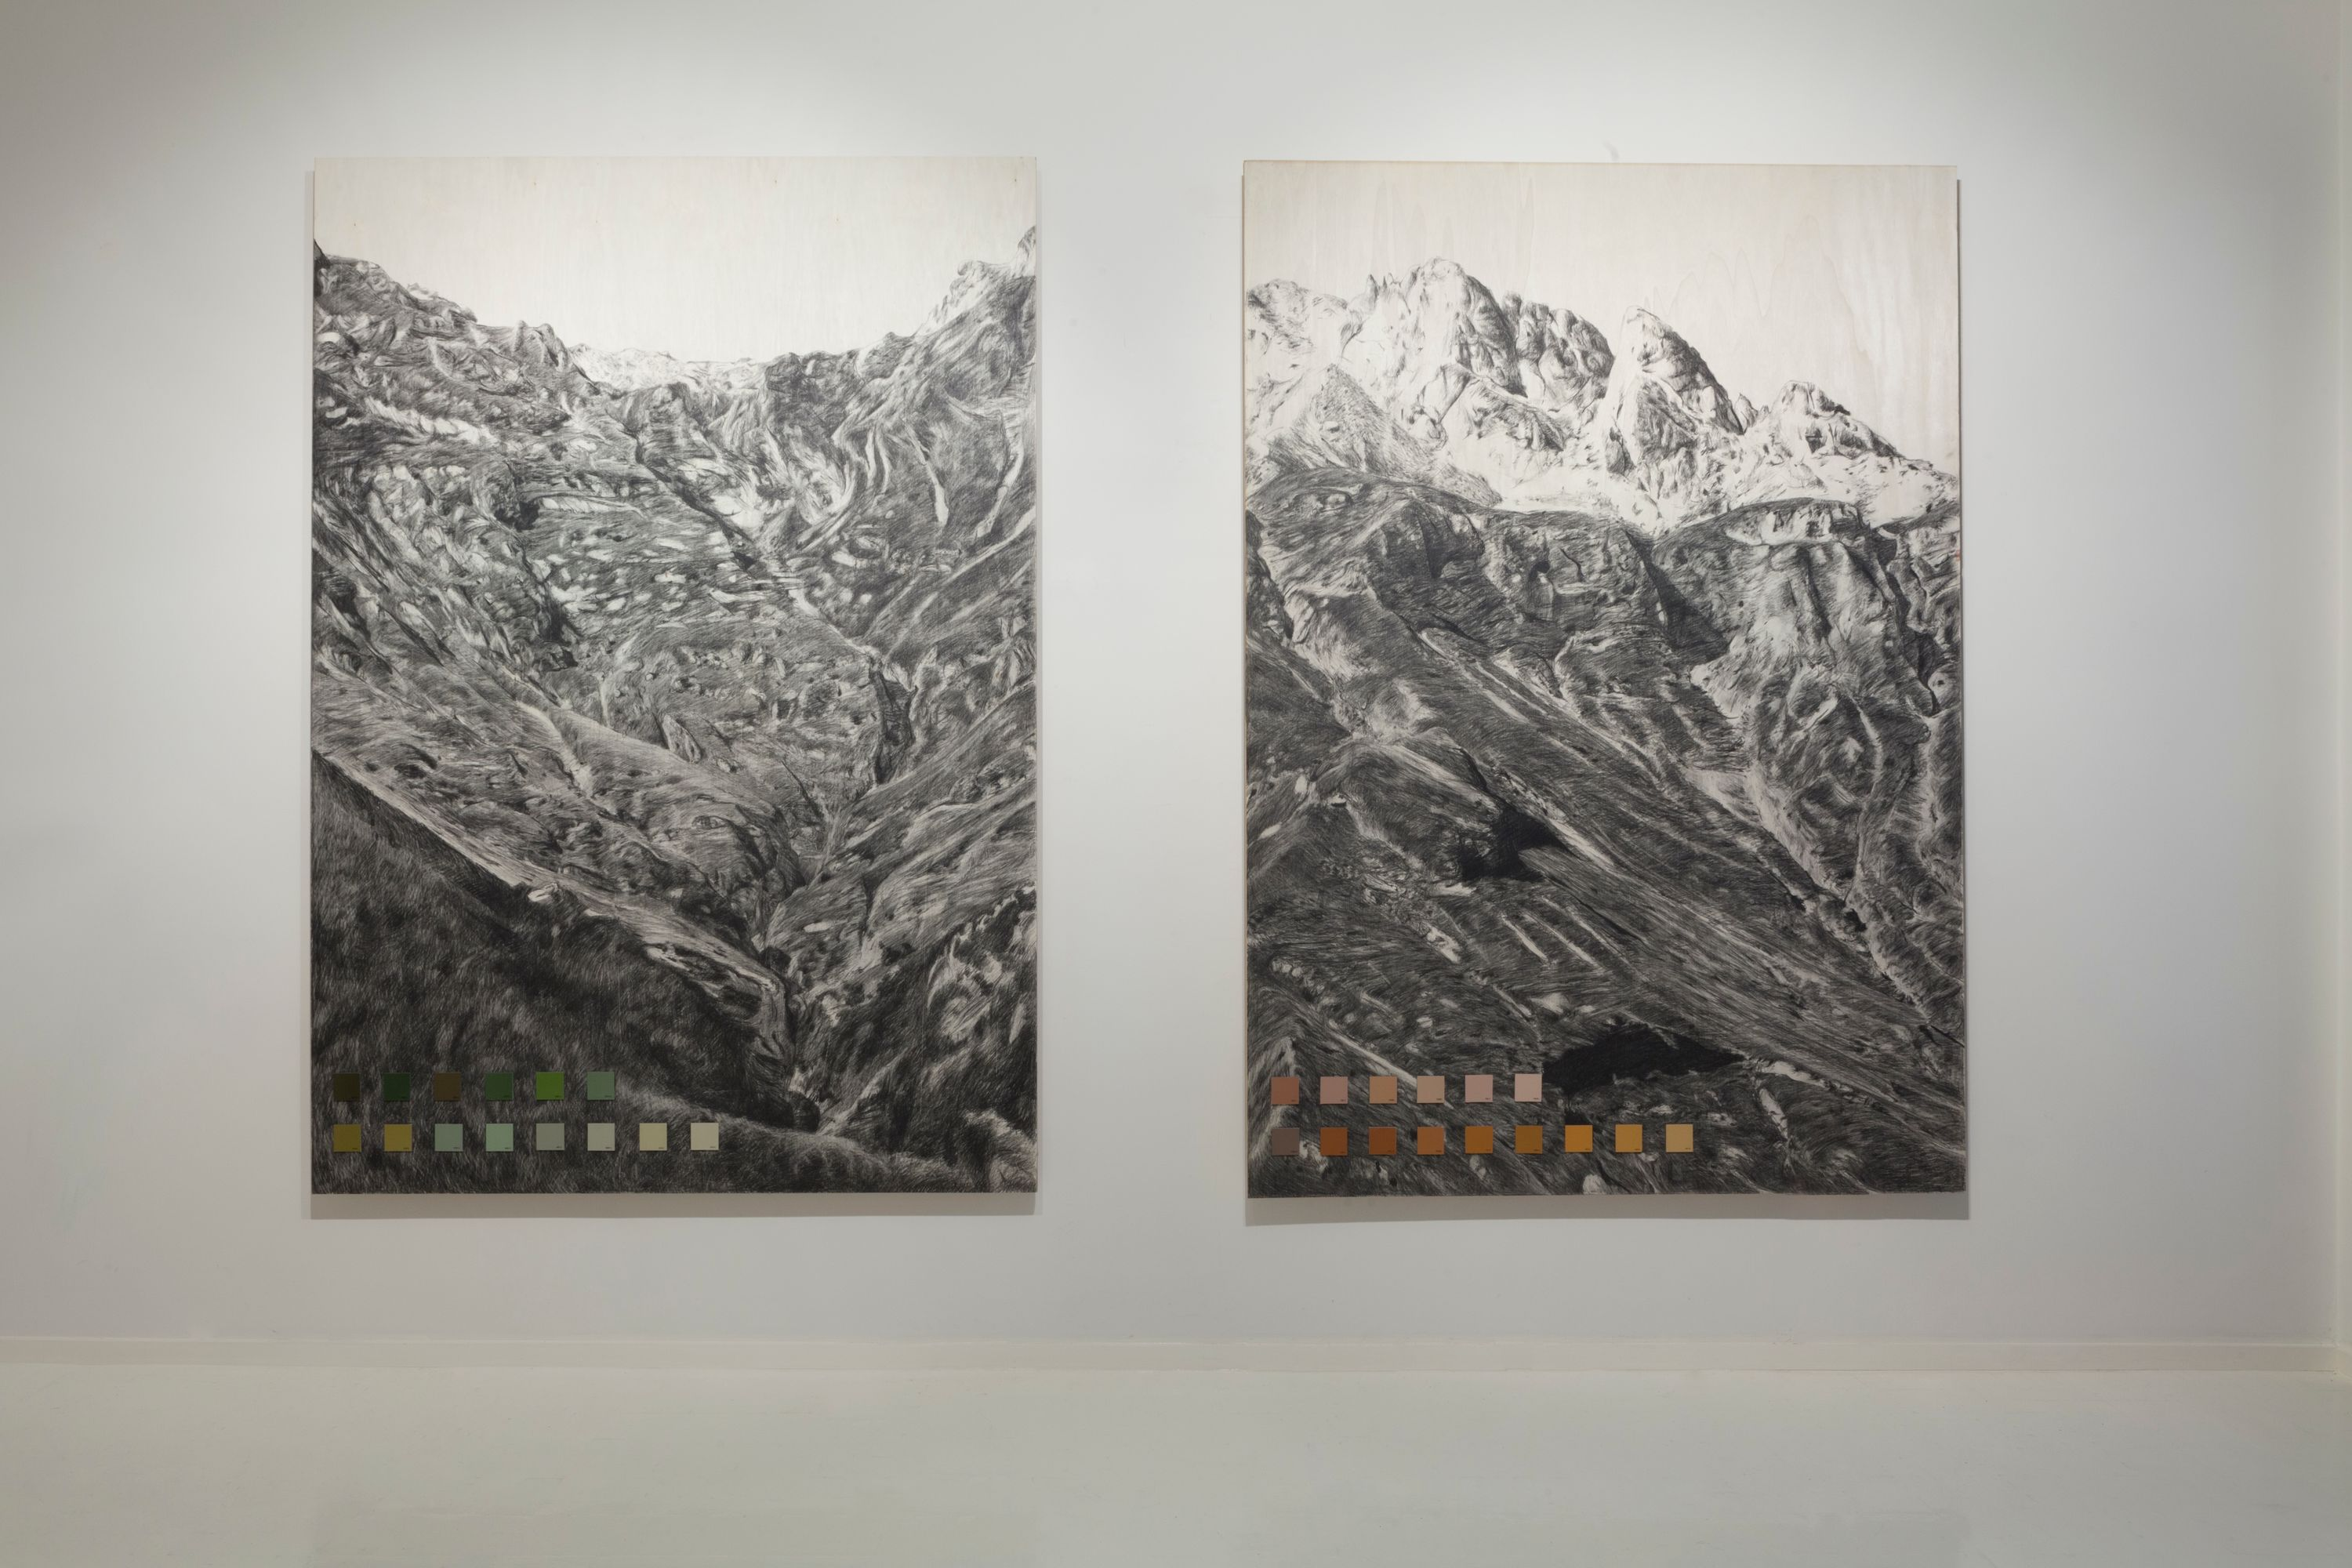 Welcome to Gransasso / 7 by Giuseppe Stampone, MLF | Marie-Laure Fleisch, Brussels (3 of 4)